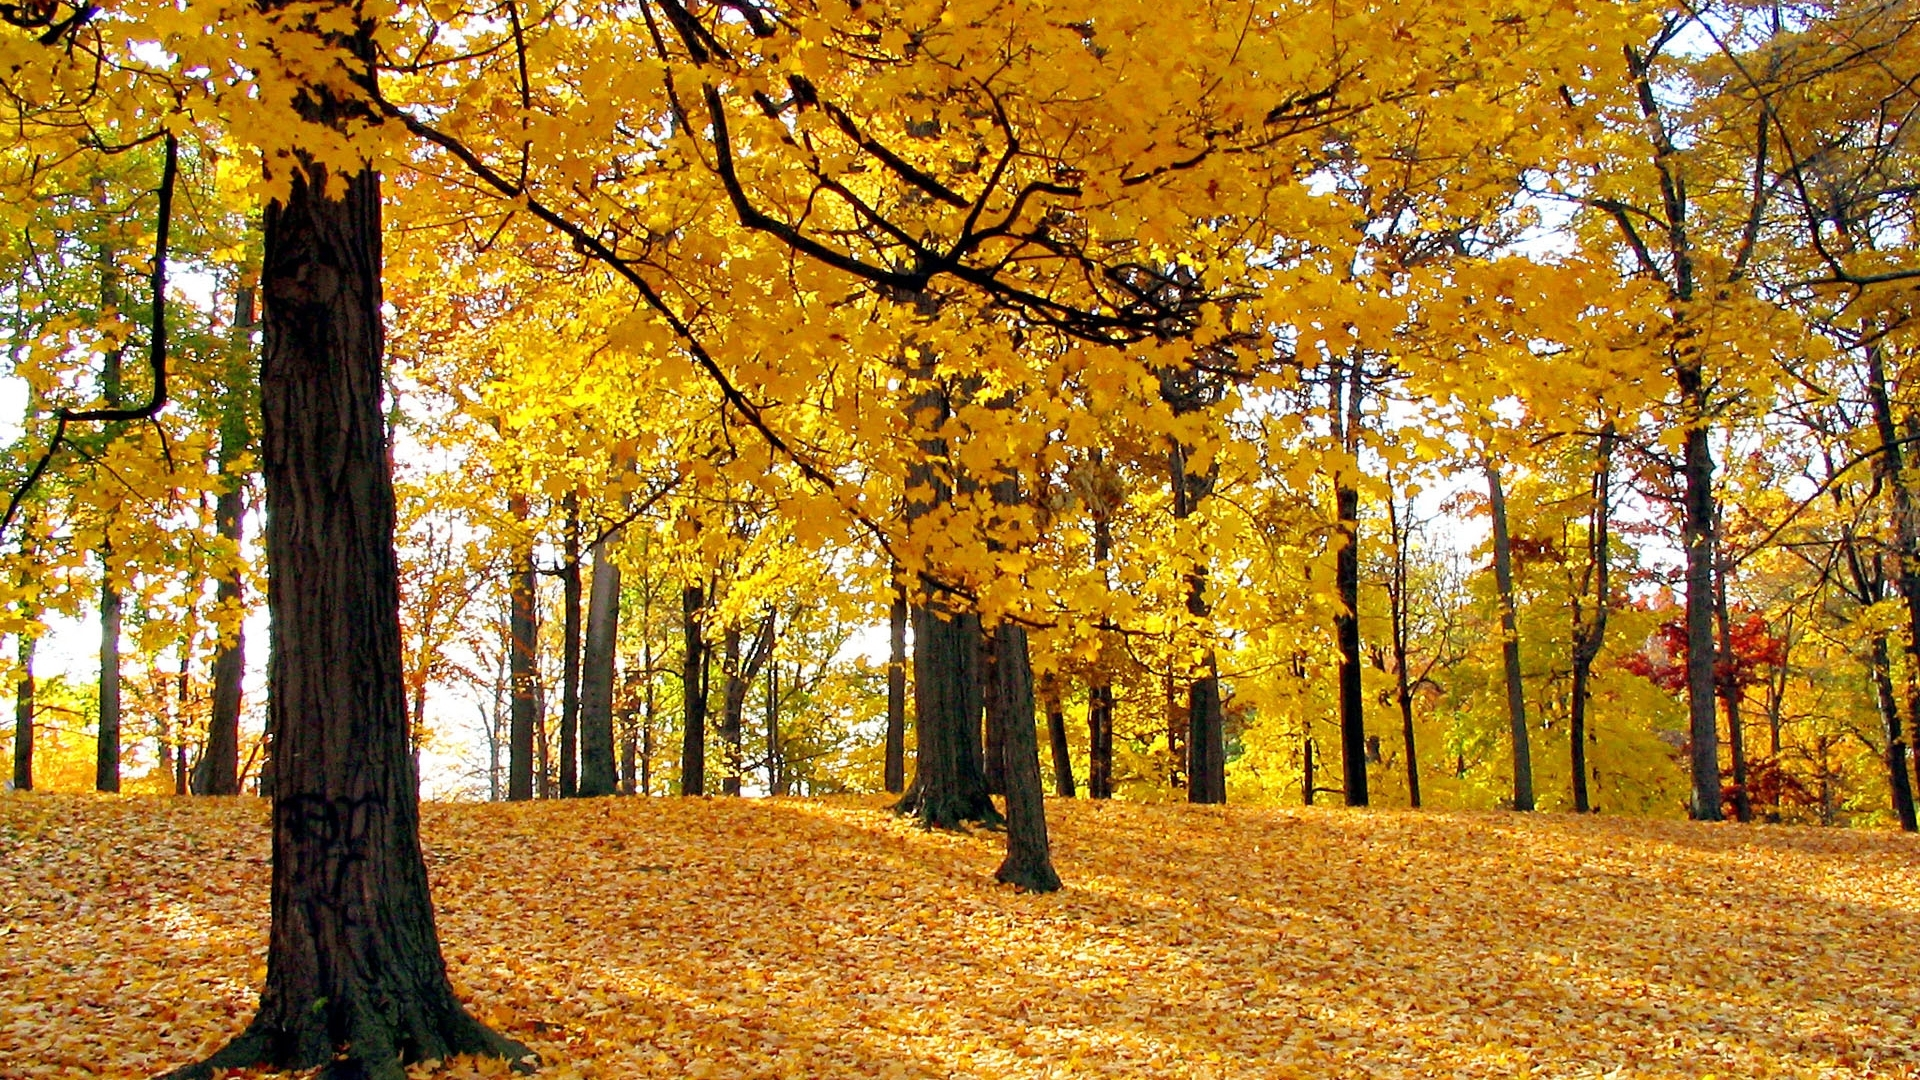 18313 download wallpaper Landscape, Trees, Autumn screensavers and pictures for free